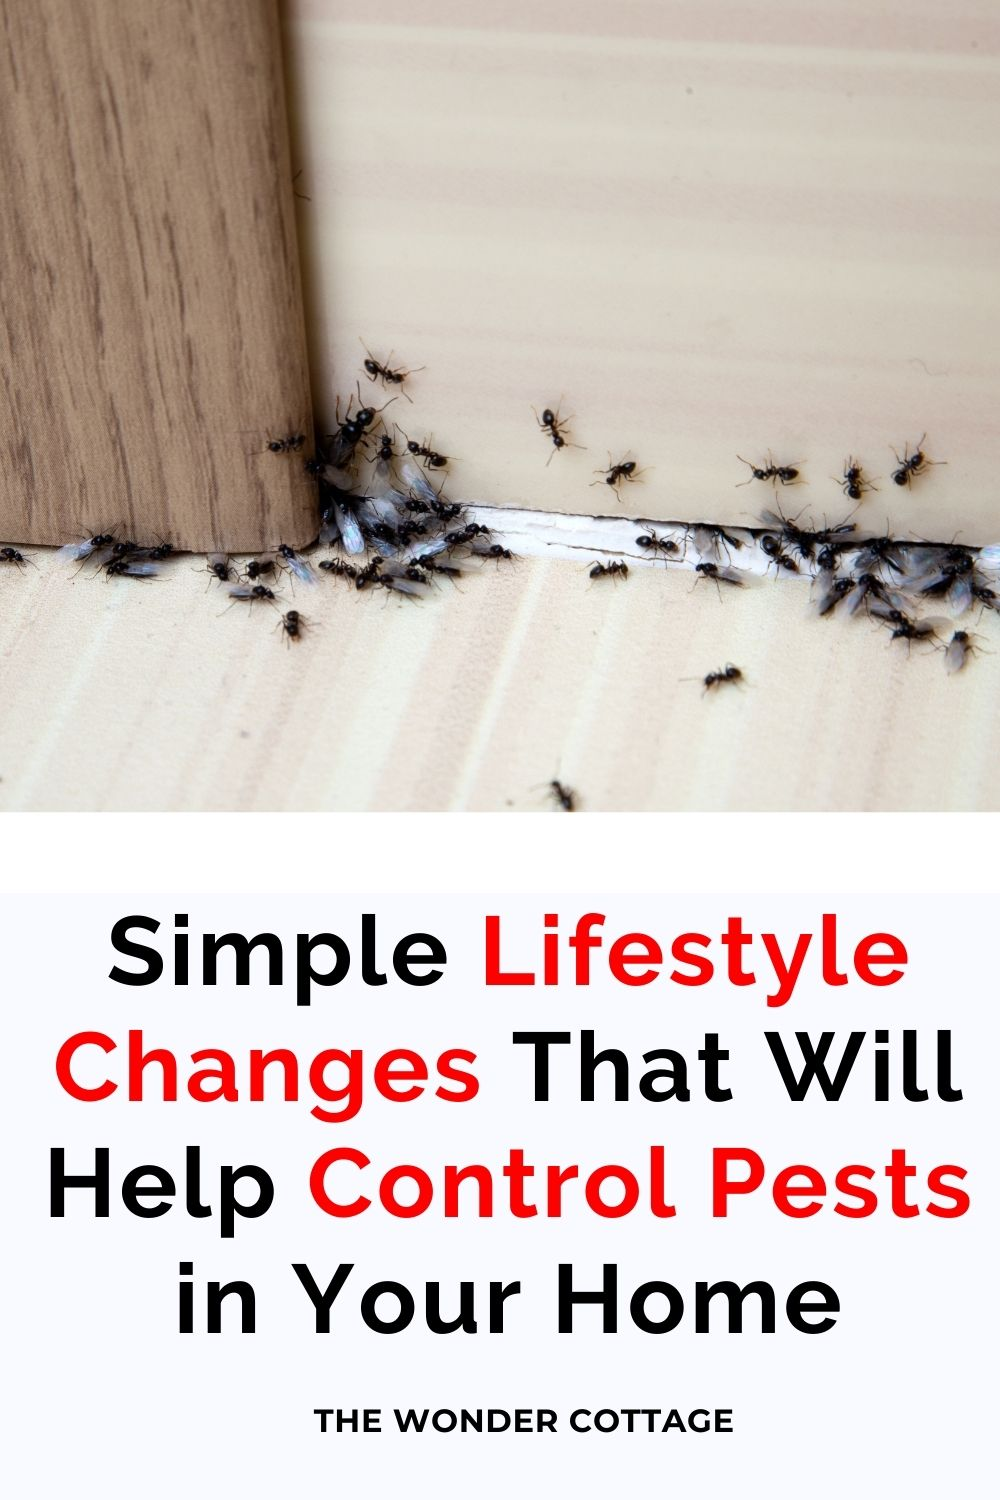 simple lifestyle changes that will help control pests in your home